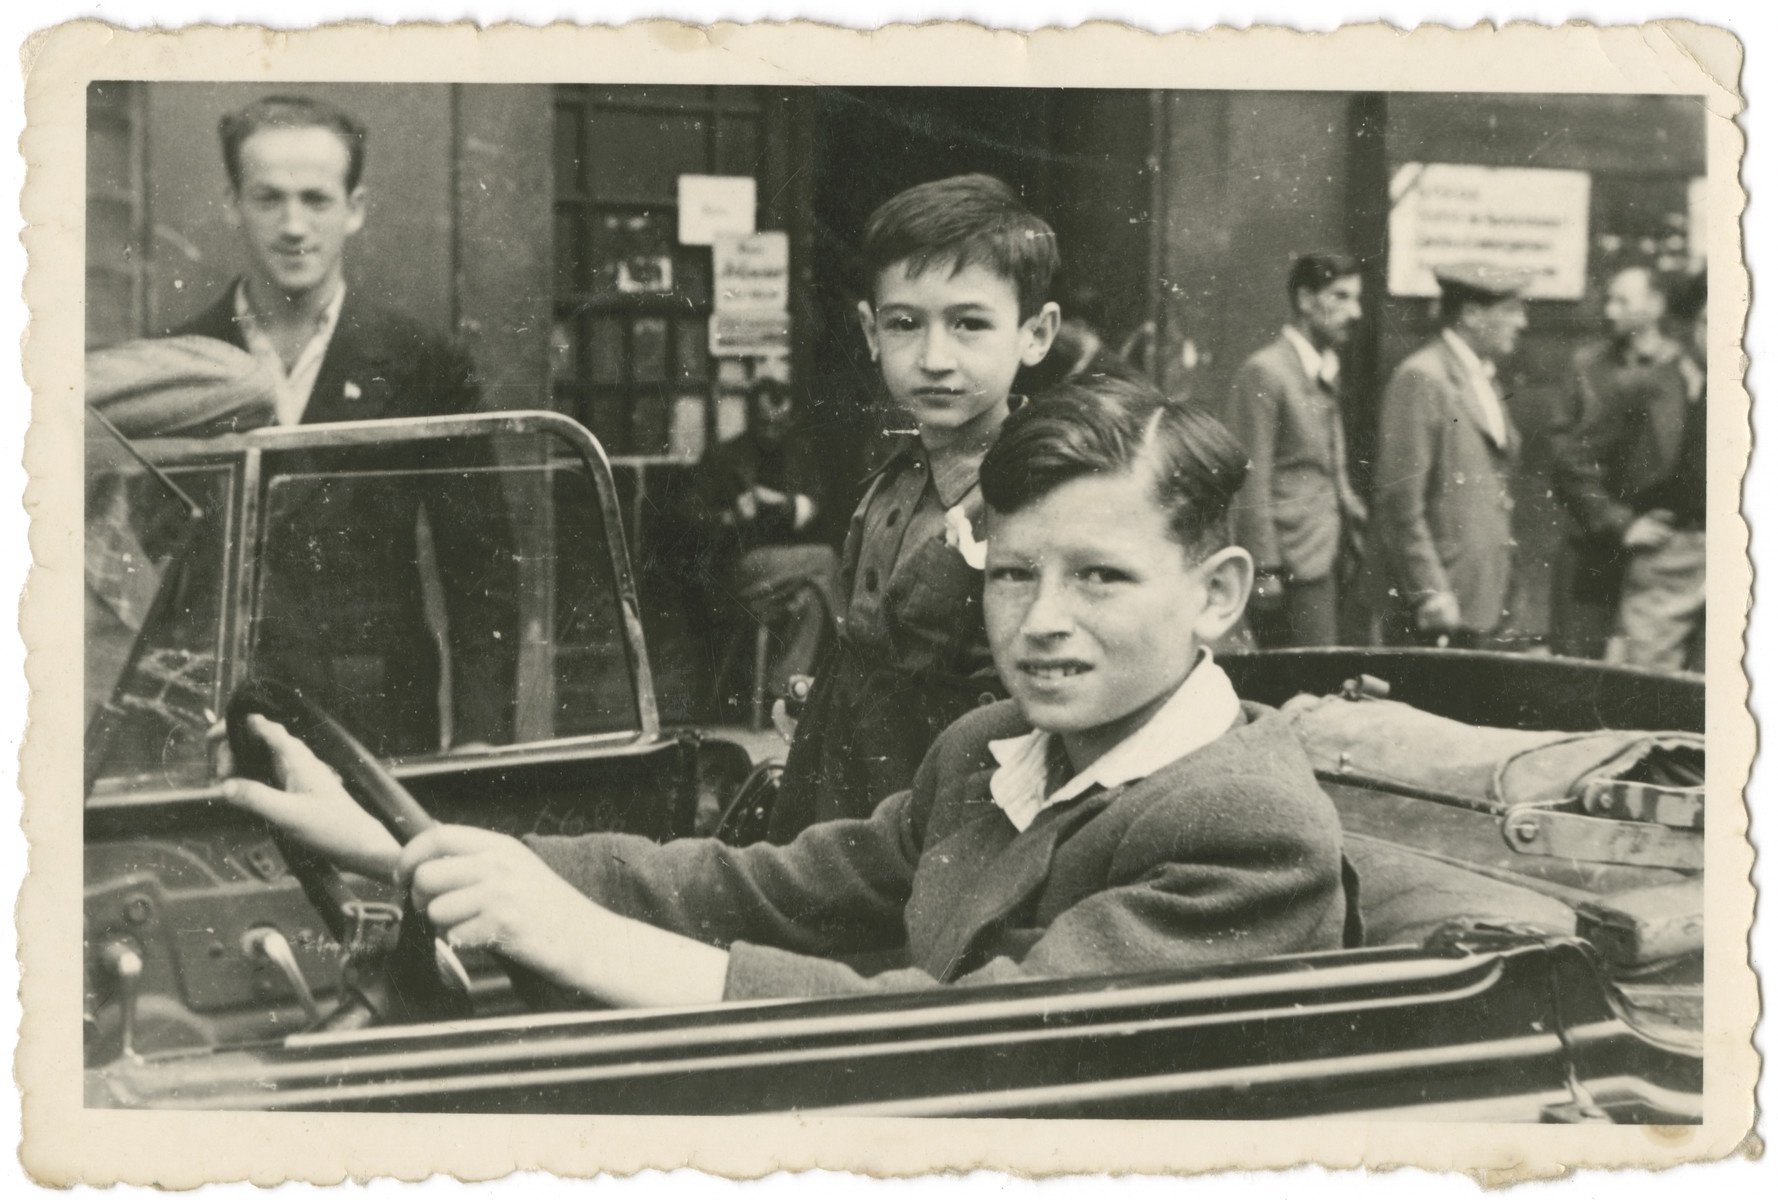 Nathan Rubinstein drives a car in the Schlachtensee displaced persons camp.  His brother Benny is standing next to him.